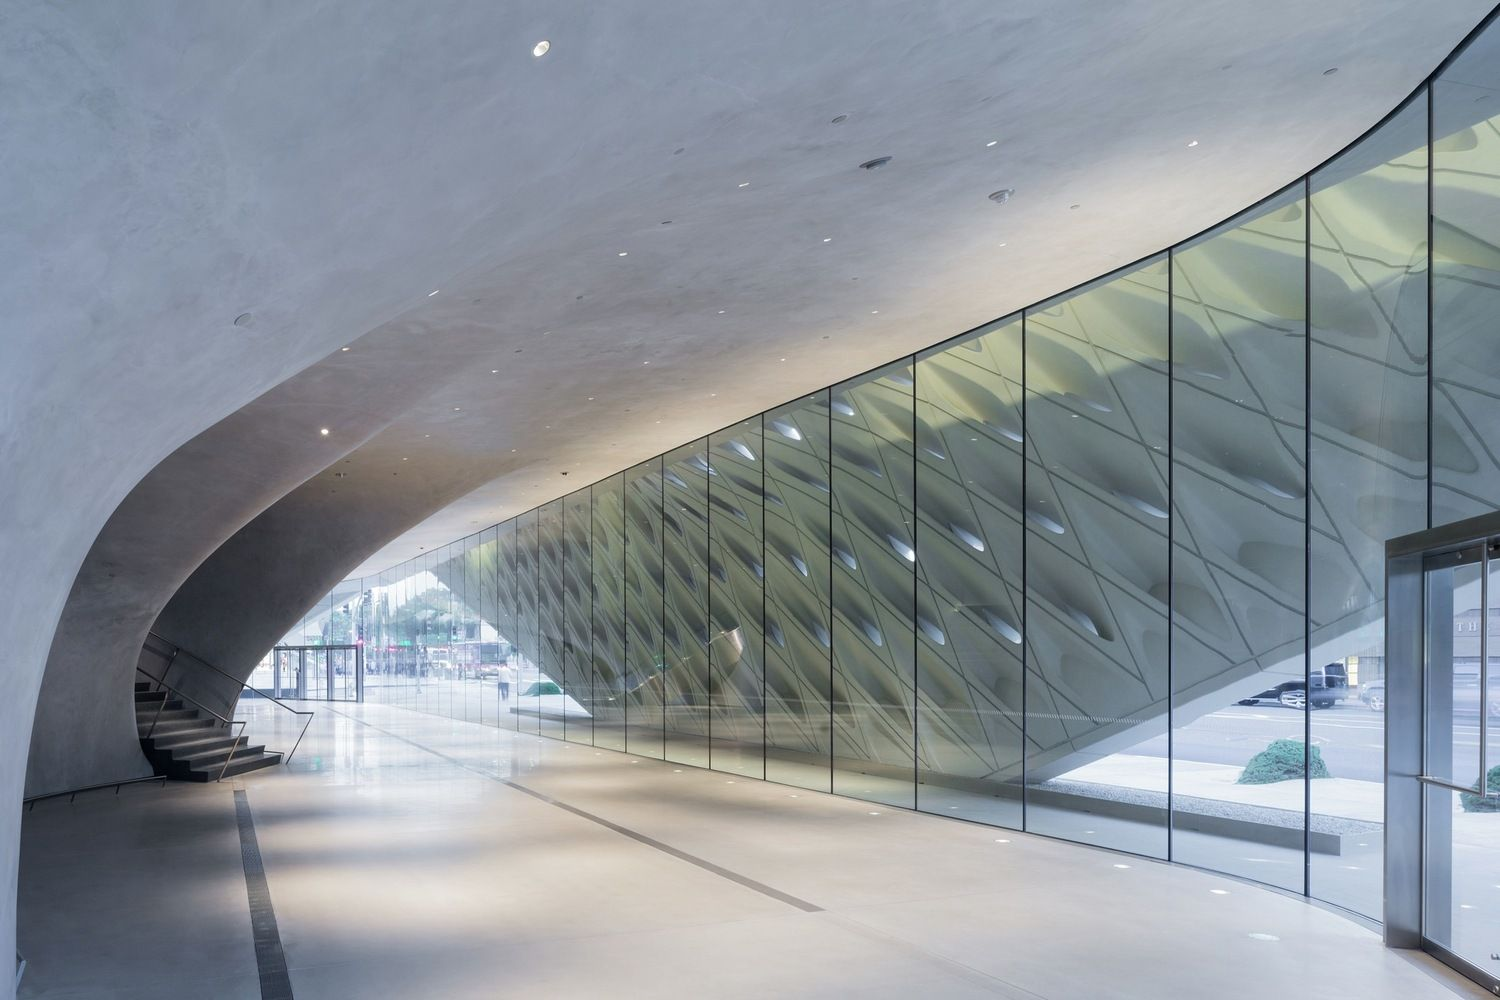 Gallery of Making Sense of The Broad: A Milestone in the Revitalization of Downtown Los Angeles - 3